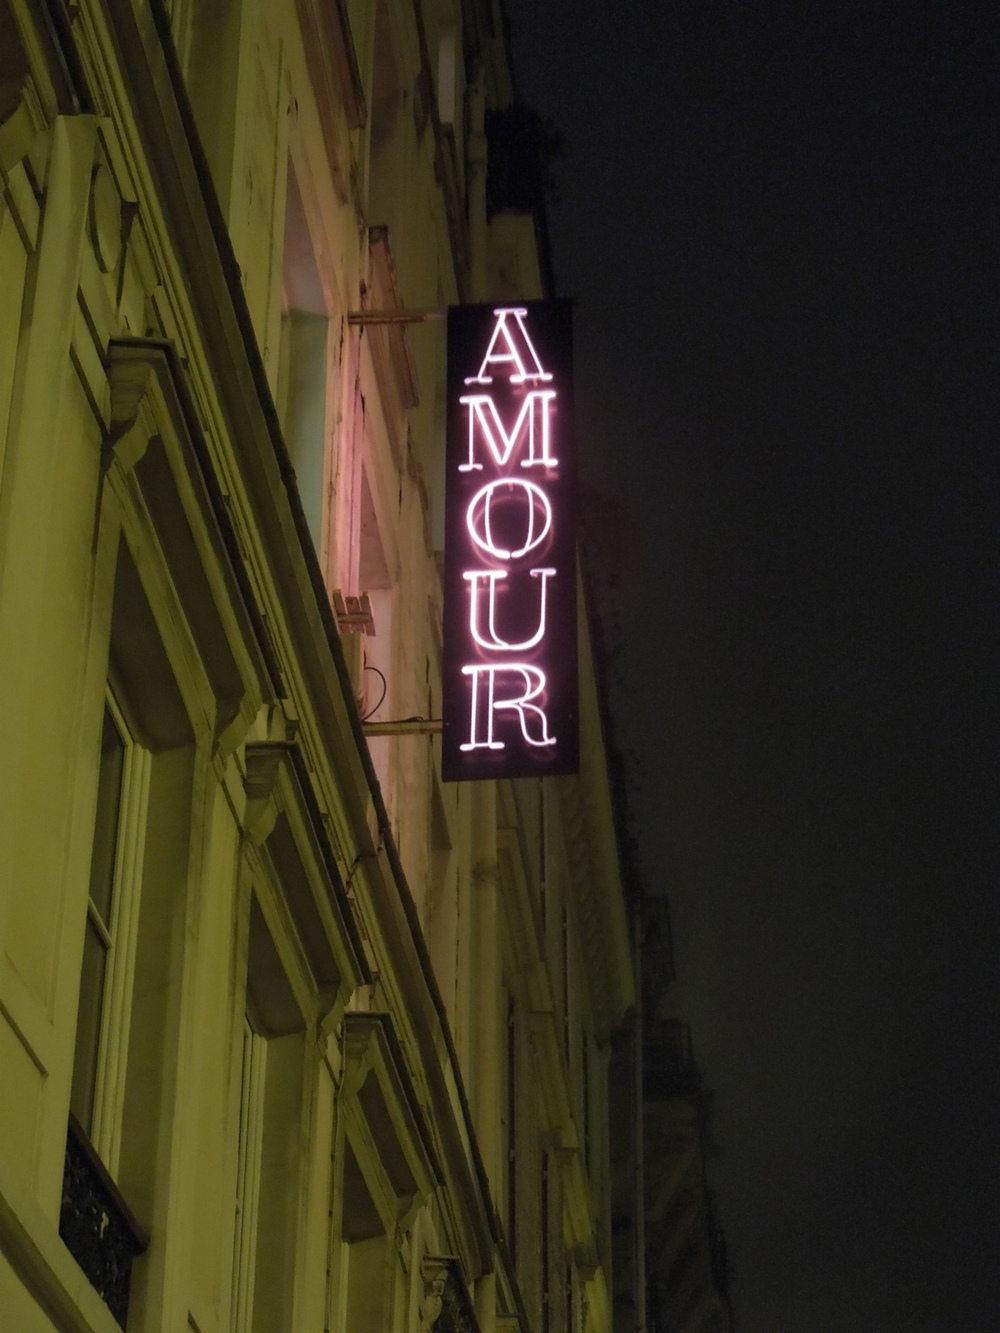 Hotel Amour, Paris